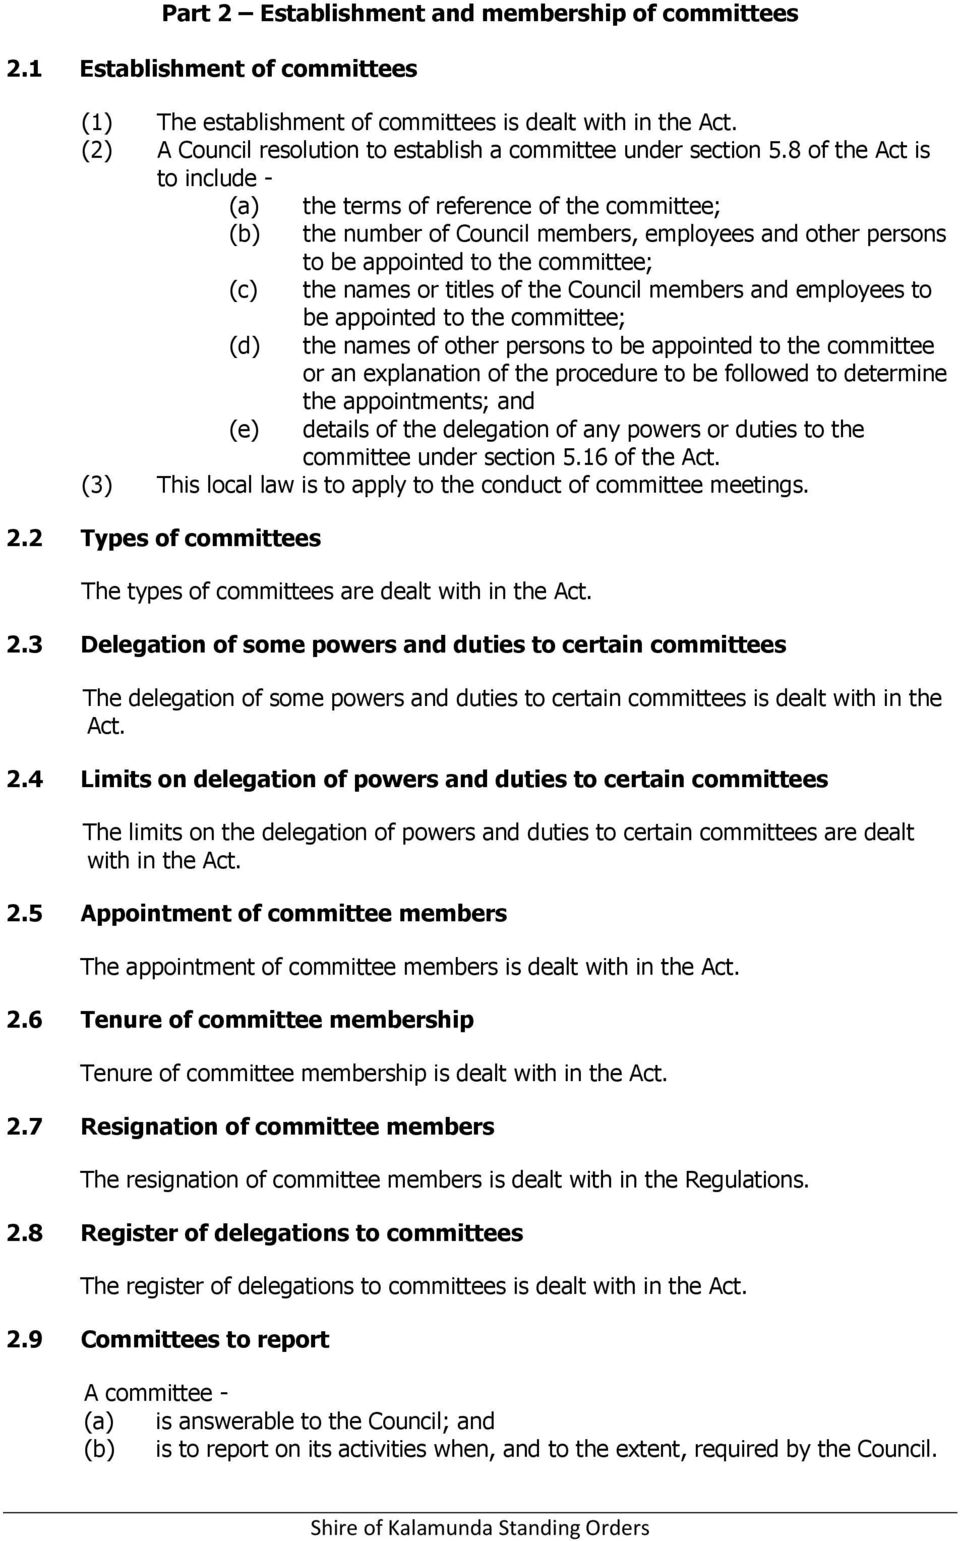 8 of the Act is to include - (a) the terms of reference of the committee; (b) the number of Council members, employees and other persons to be appointed to the committee; (c) the names or titles of